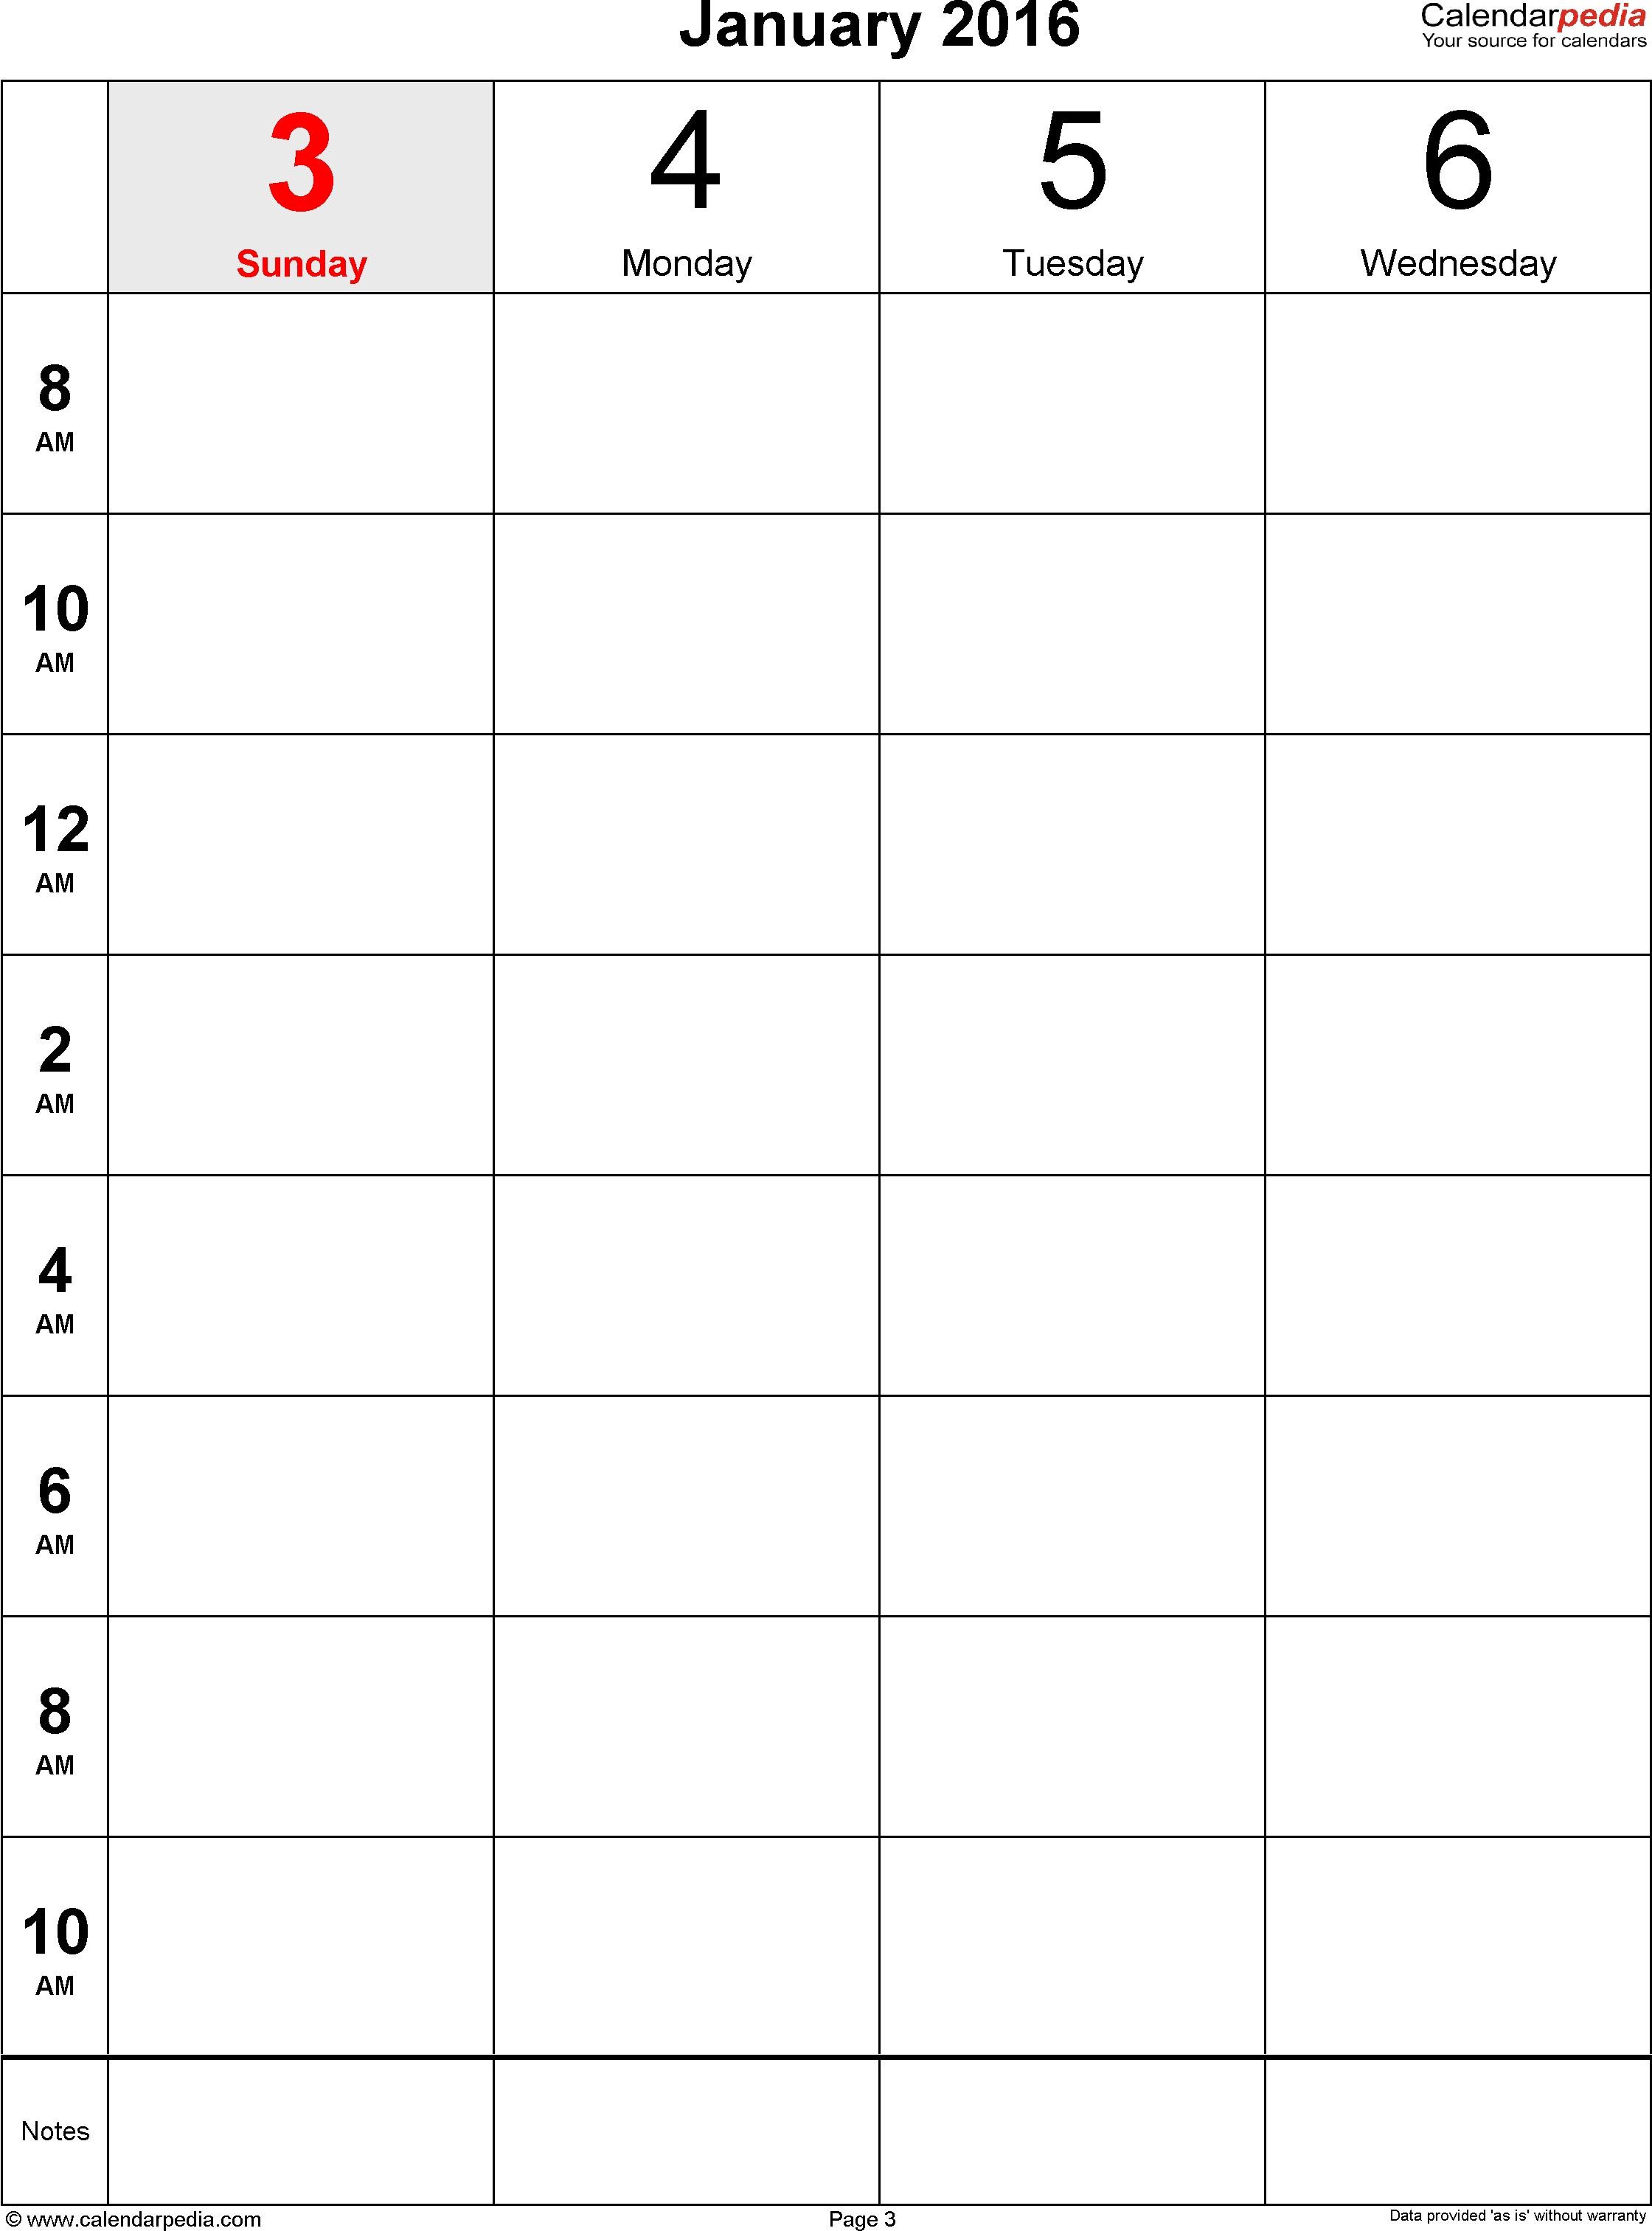 Weekly Calendar 2016 For Word - 12 Free Printable Templates Calendar Template 8.5 X 11